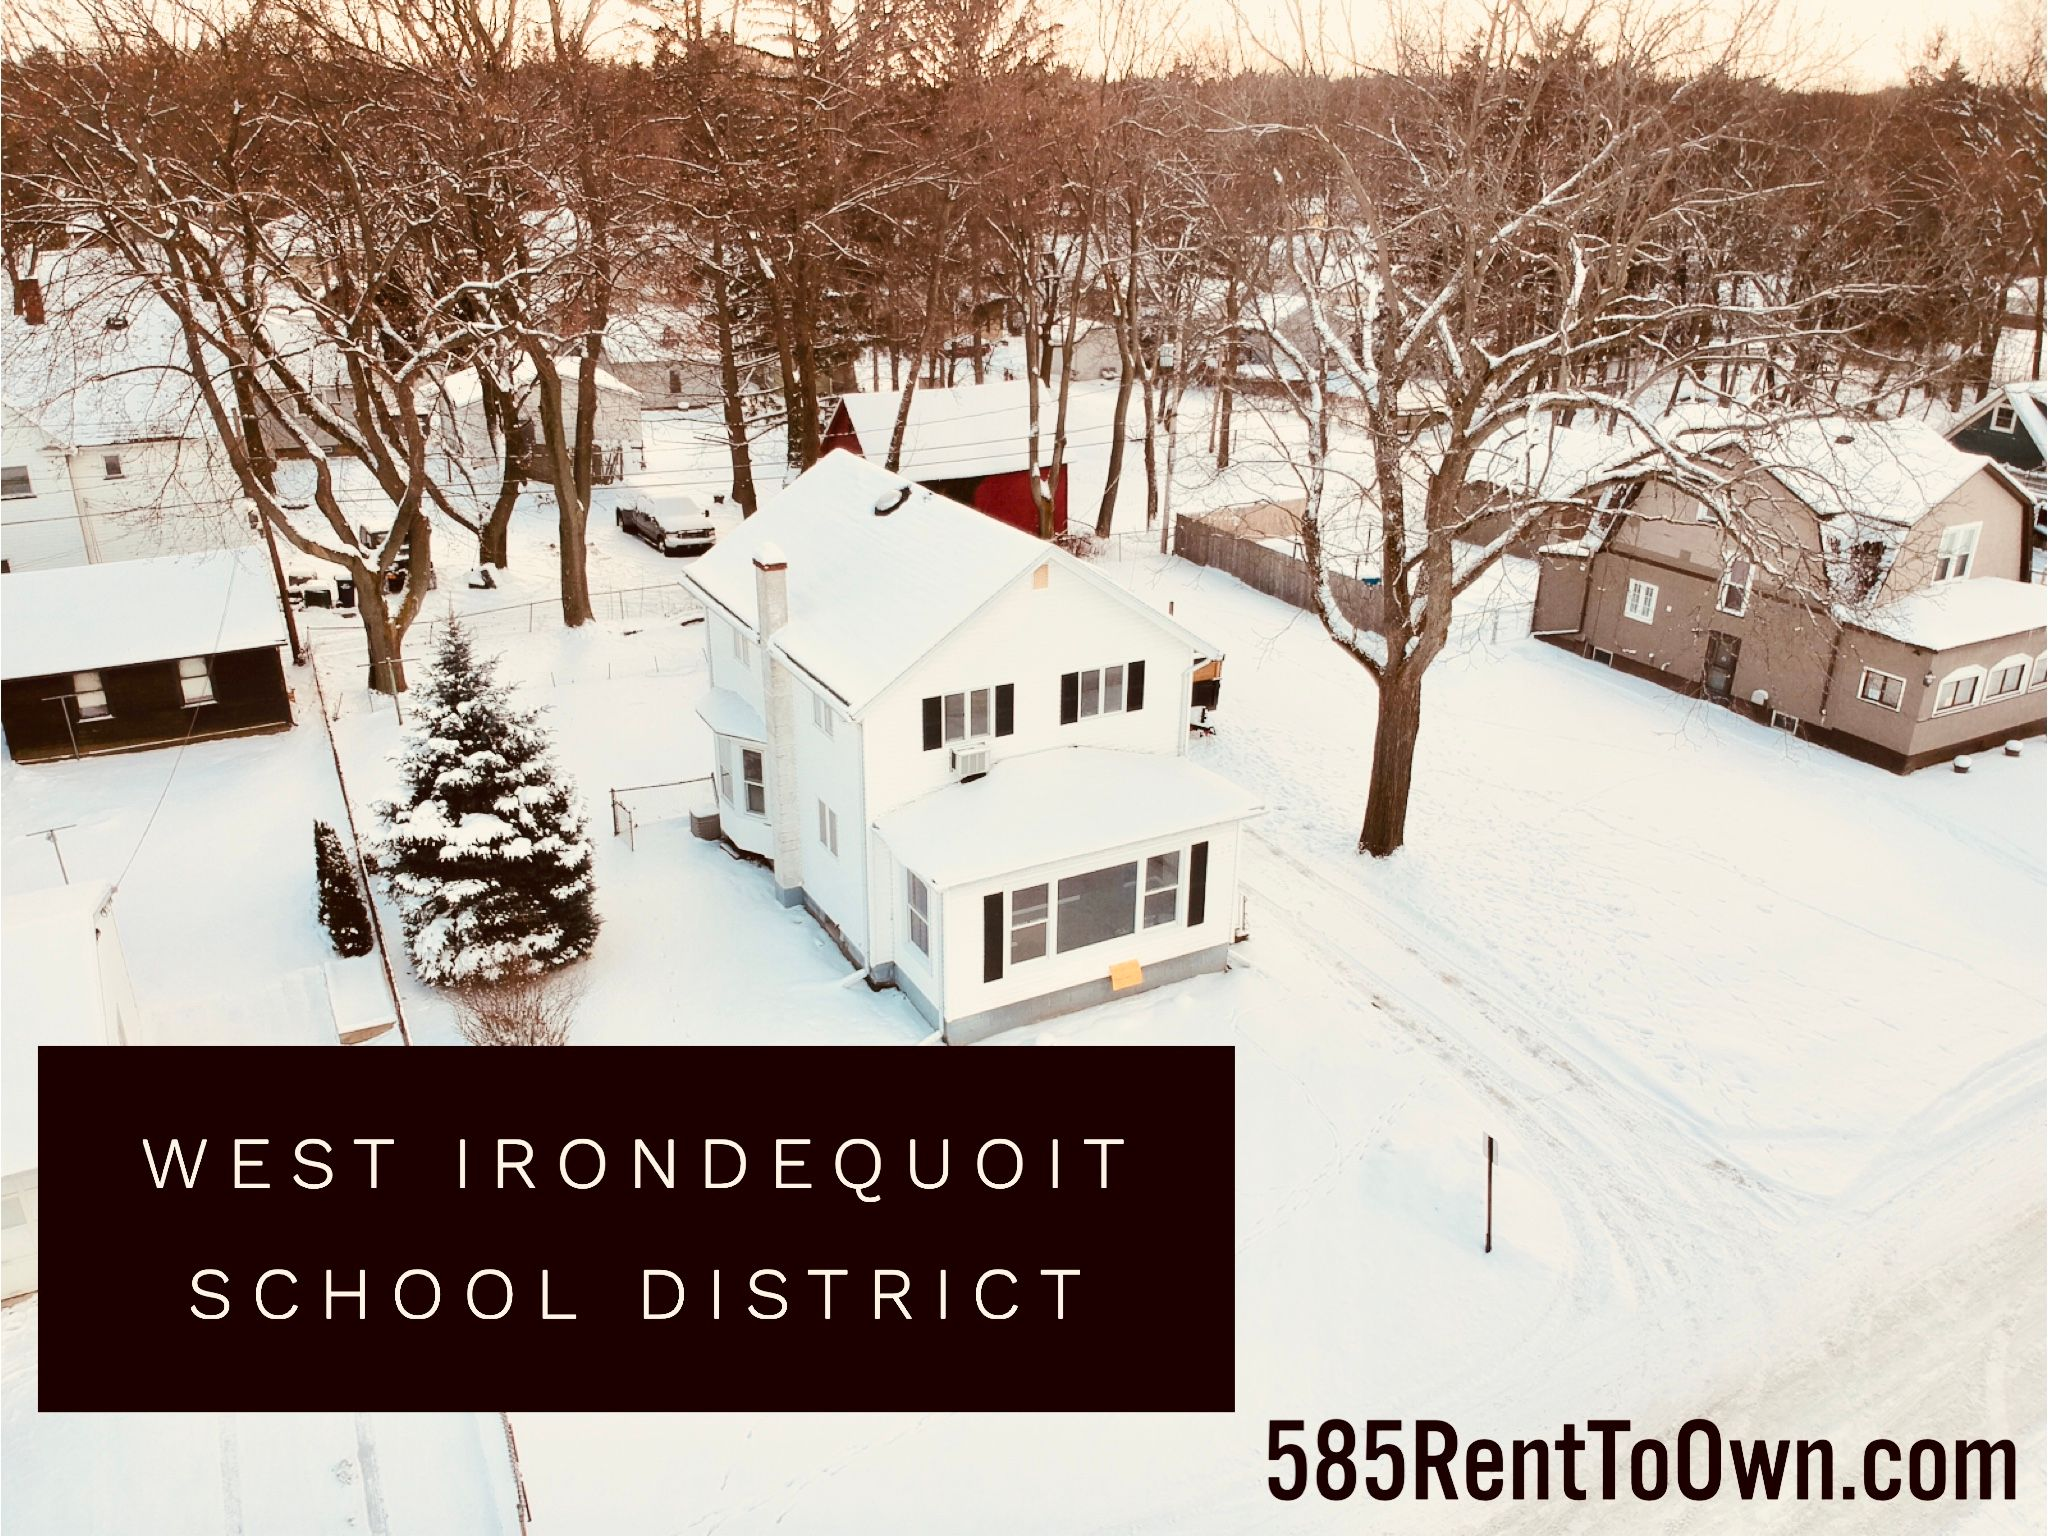 East Irondequoit Central School District News